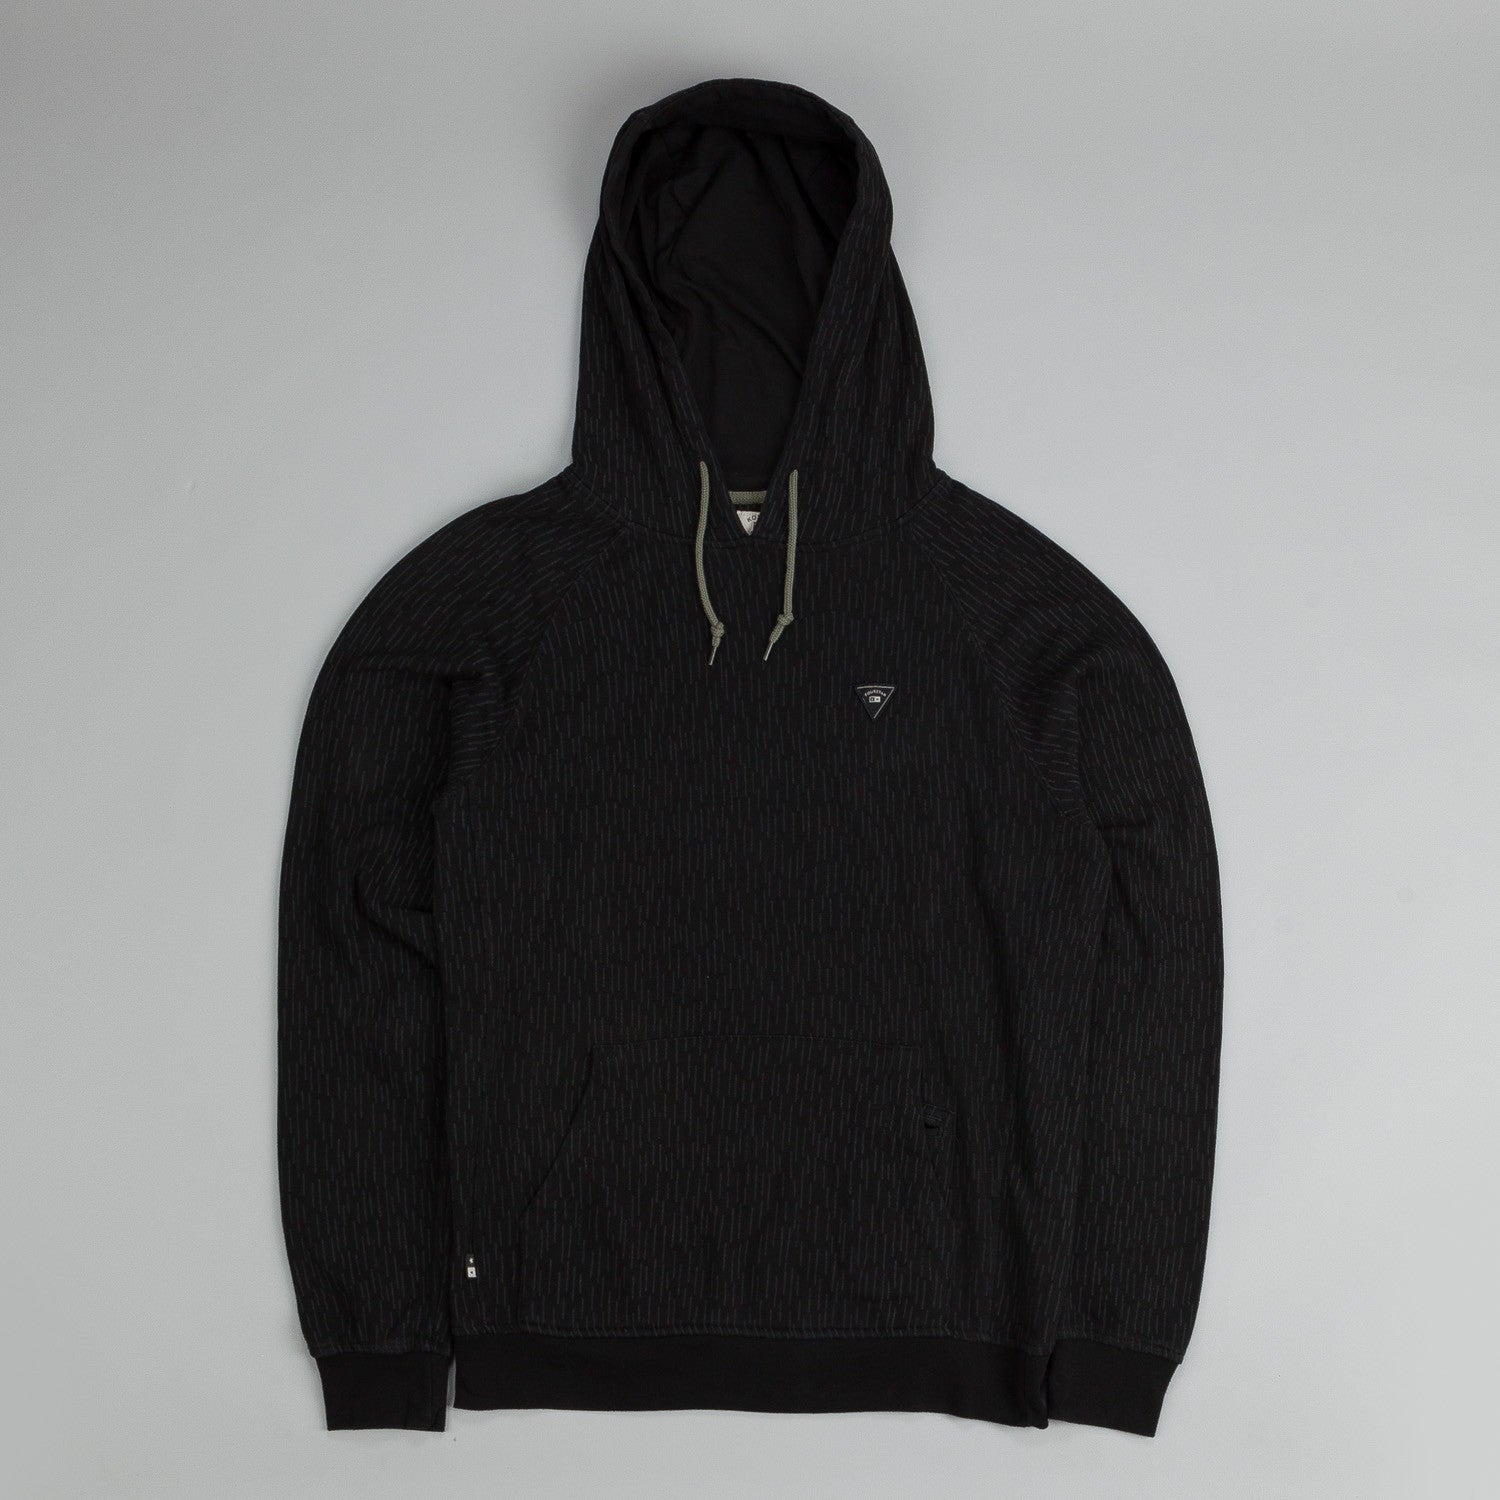 Fourstar Koston Hooded Sweatshirt Black